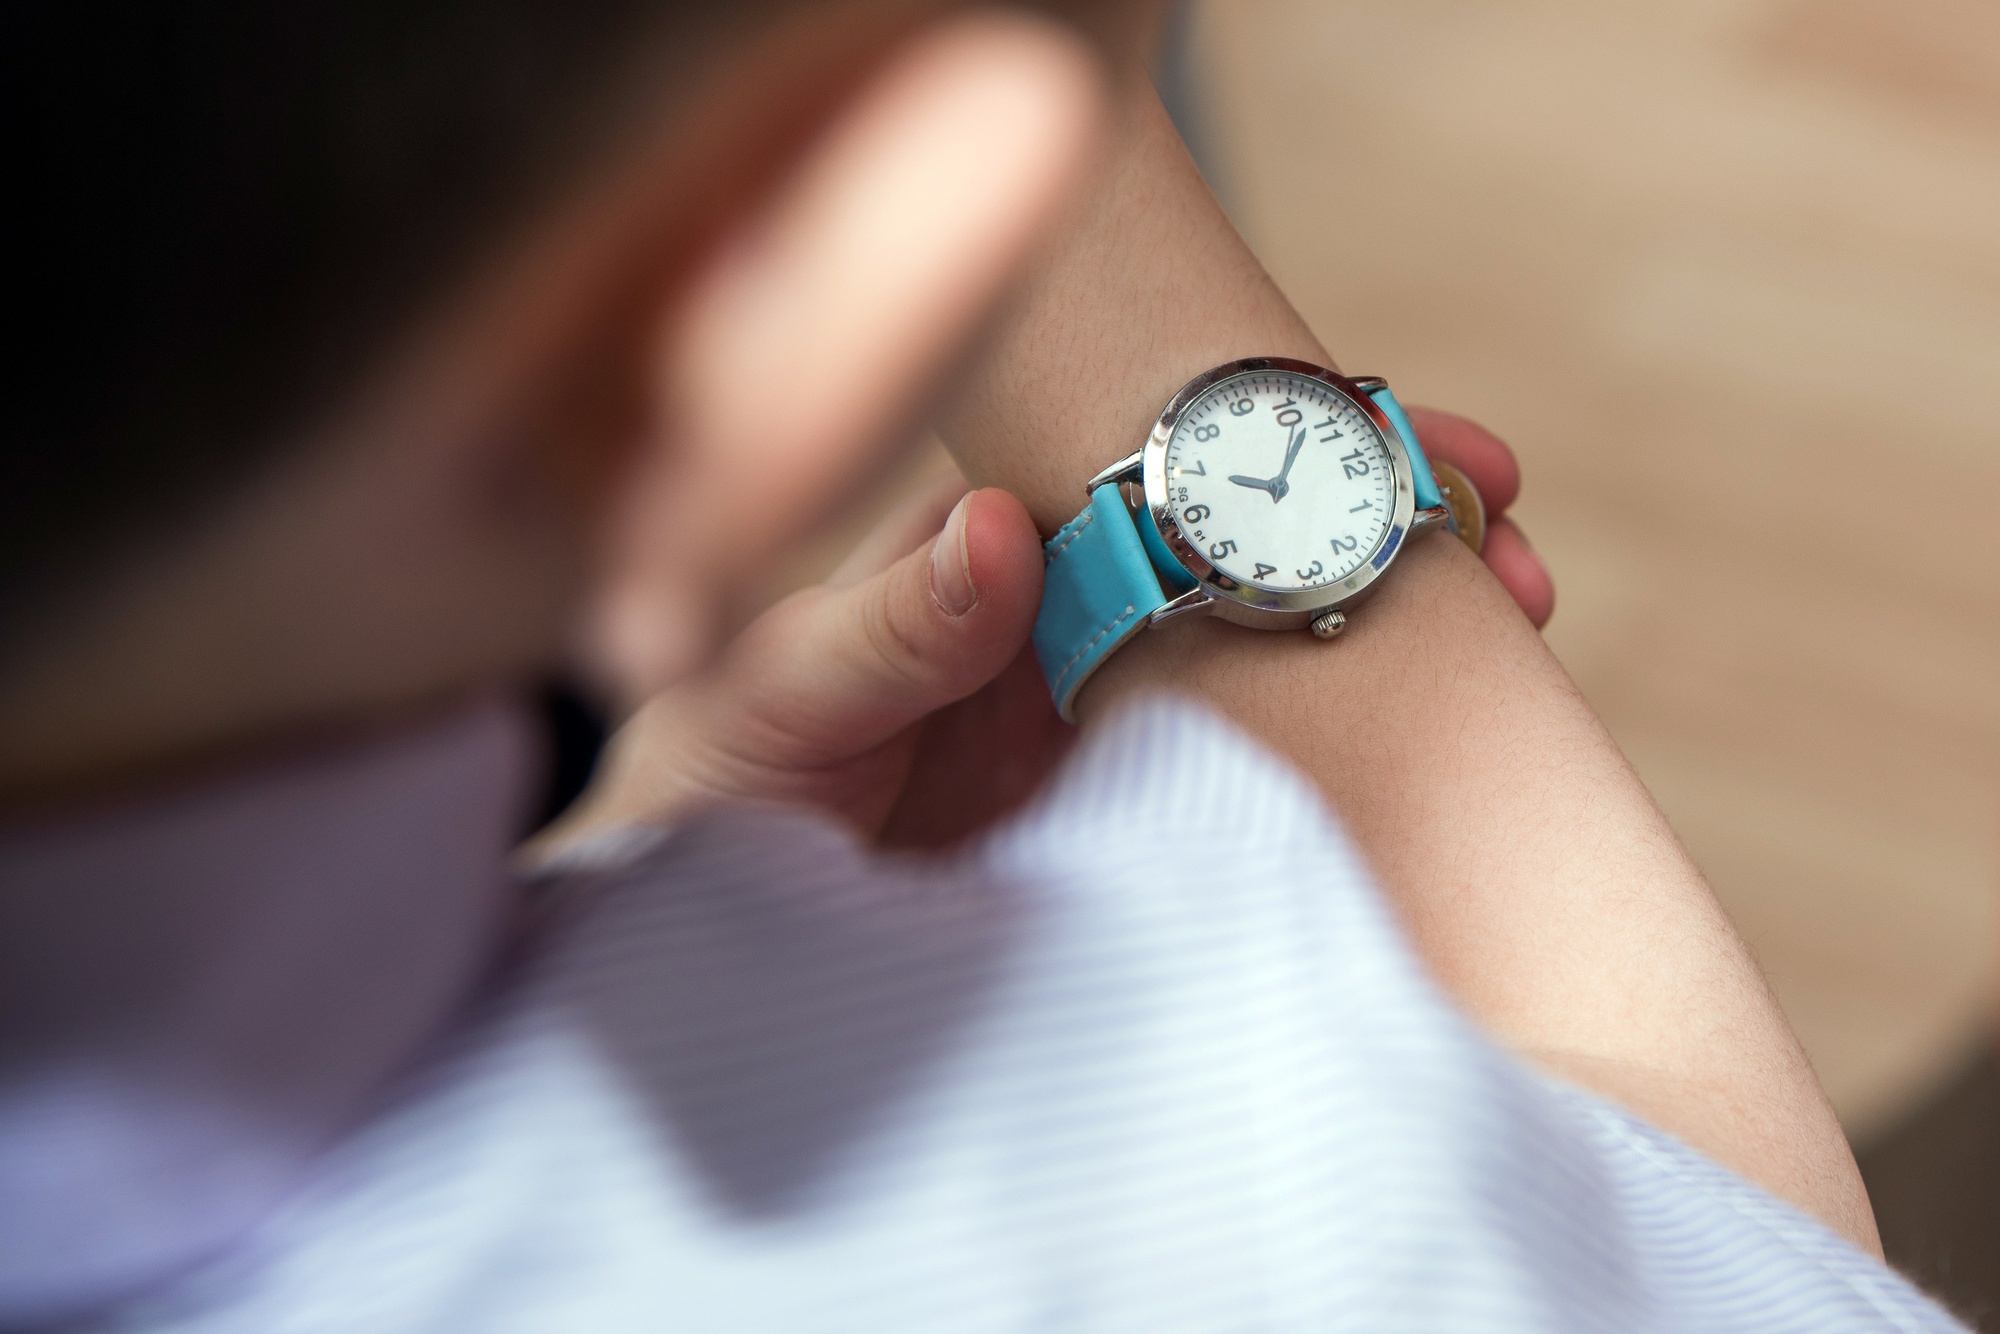 Tiny Timepieces: How to Choose the Best Watch for Kids